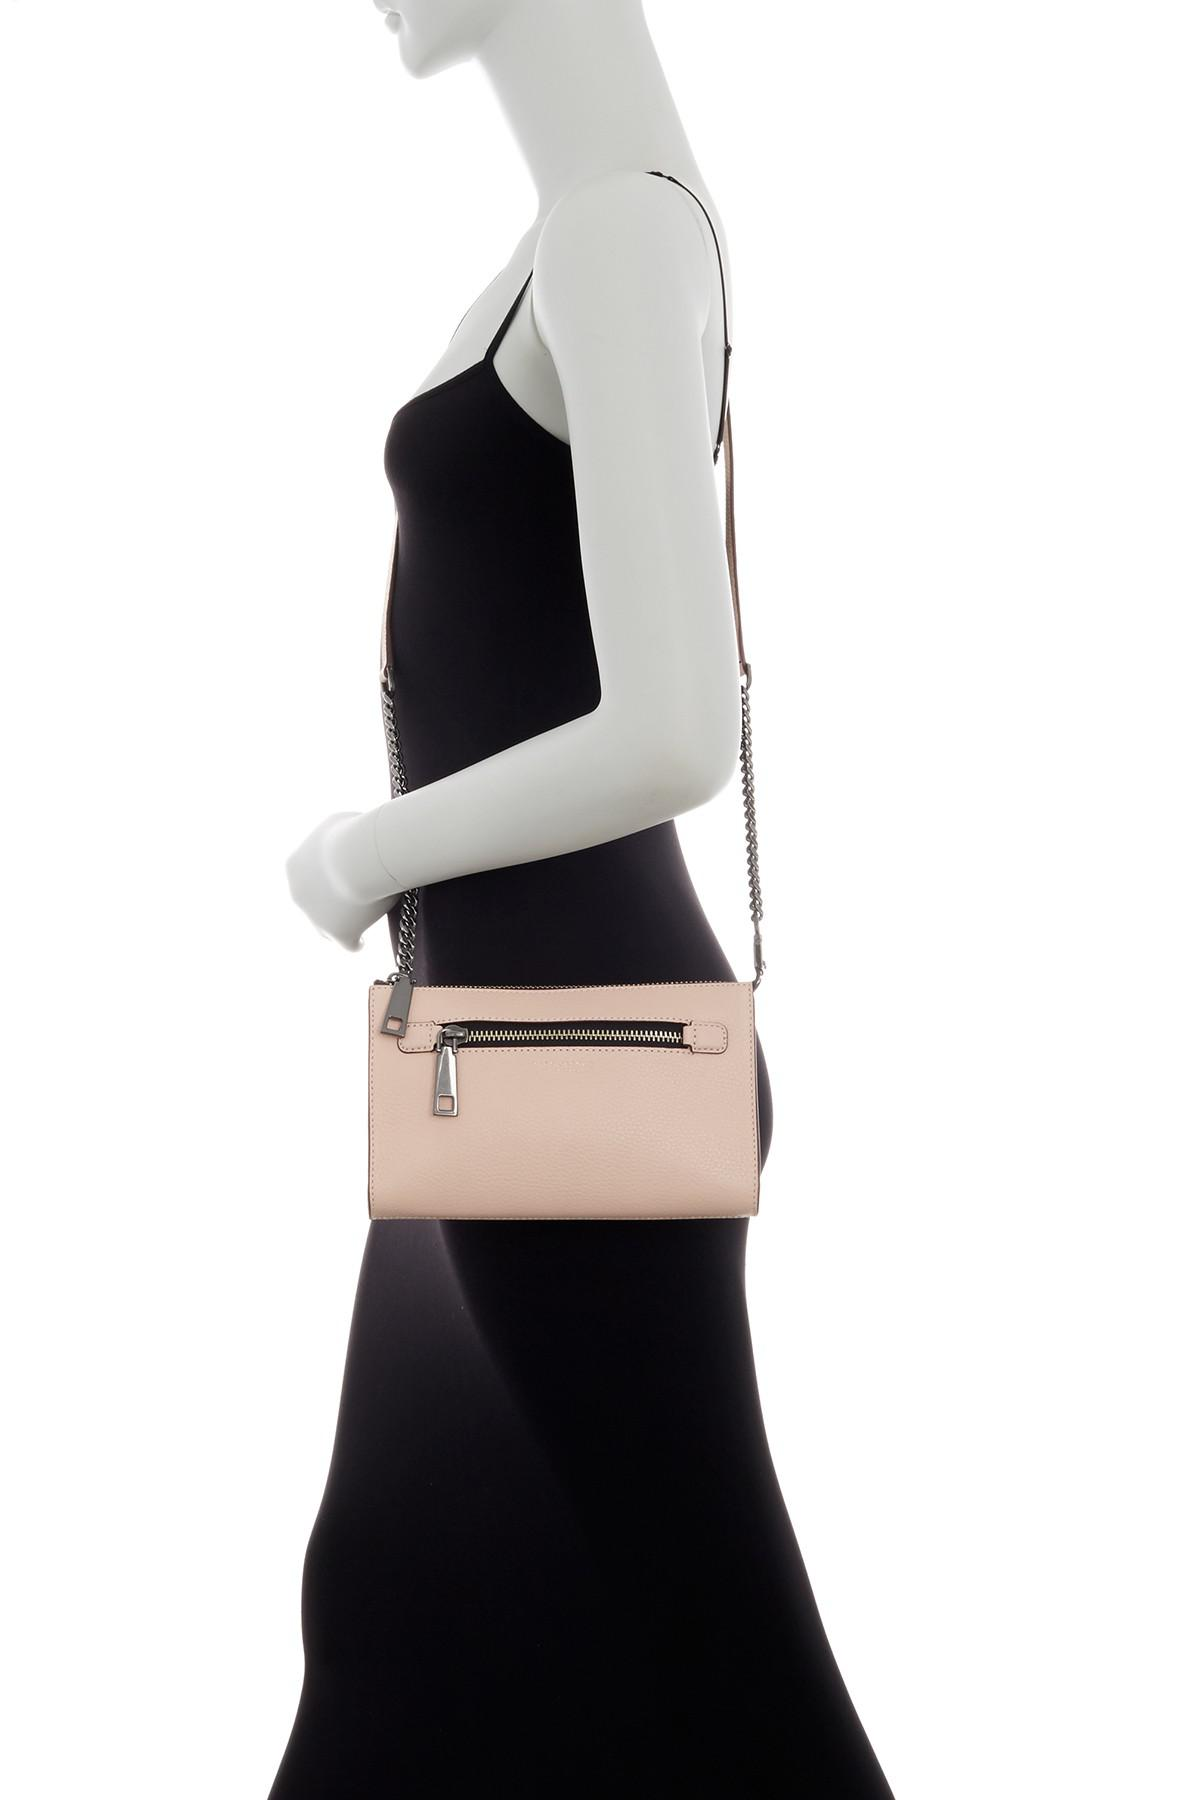 56cac7166f Lyst - Marc Jacobs Small Leather Crossbody Bag in Black